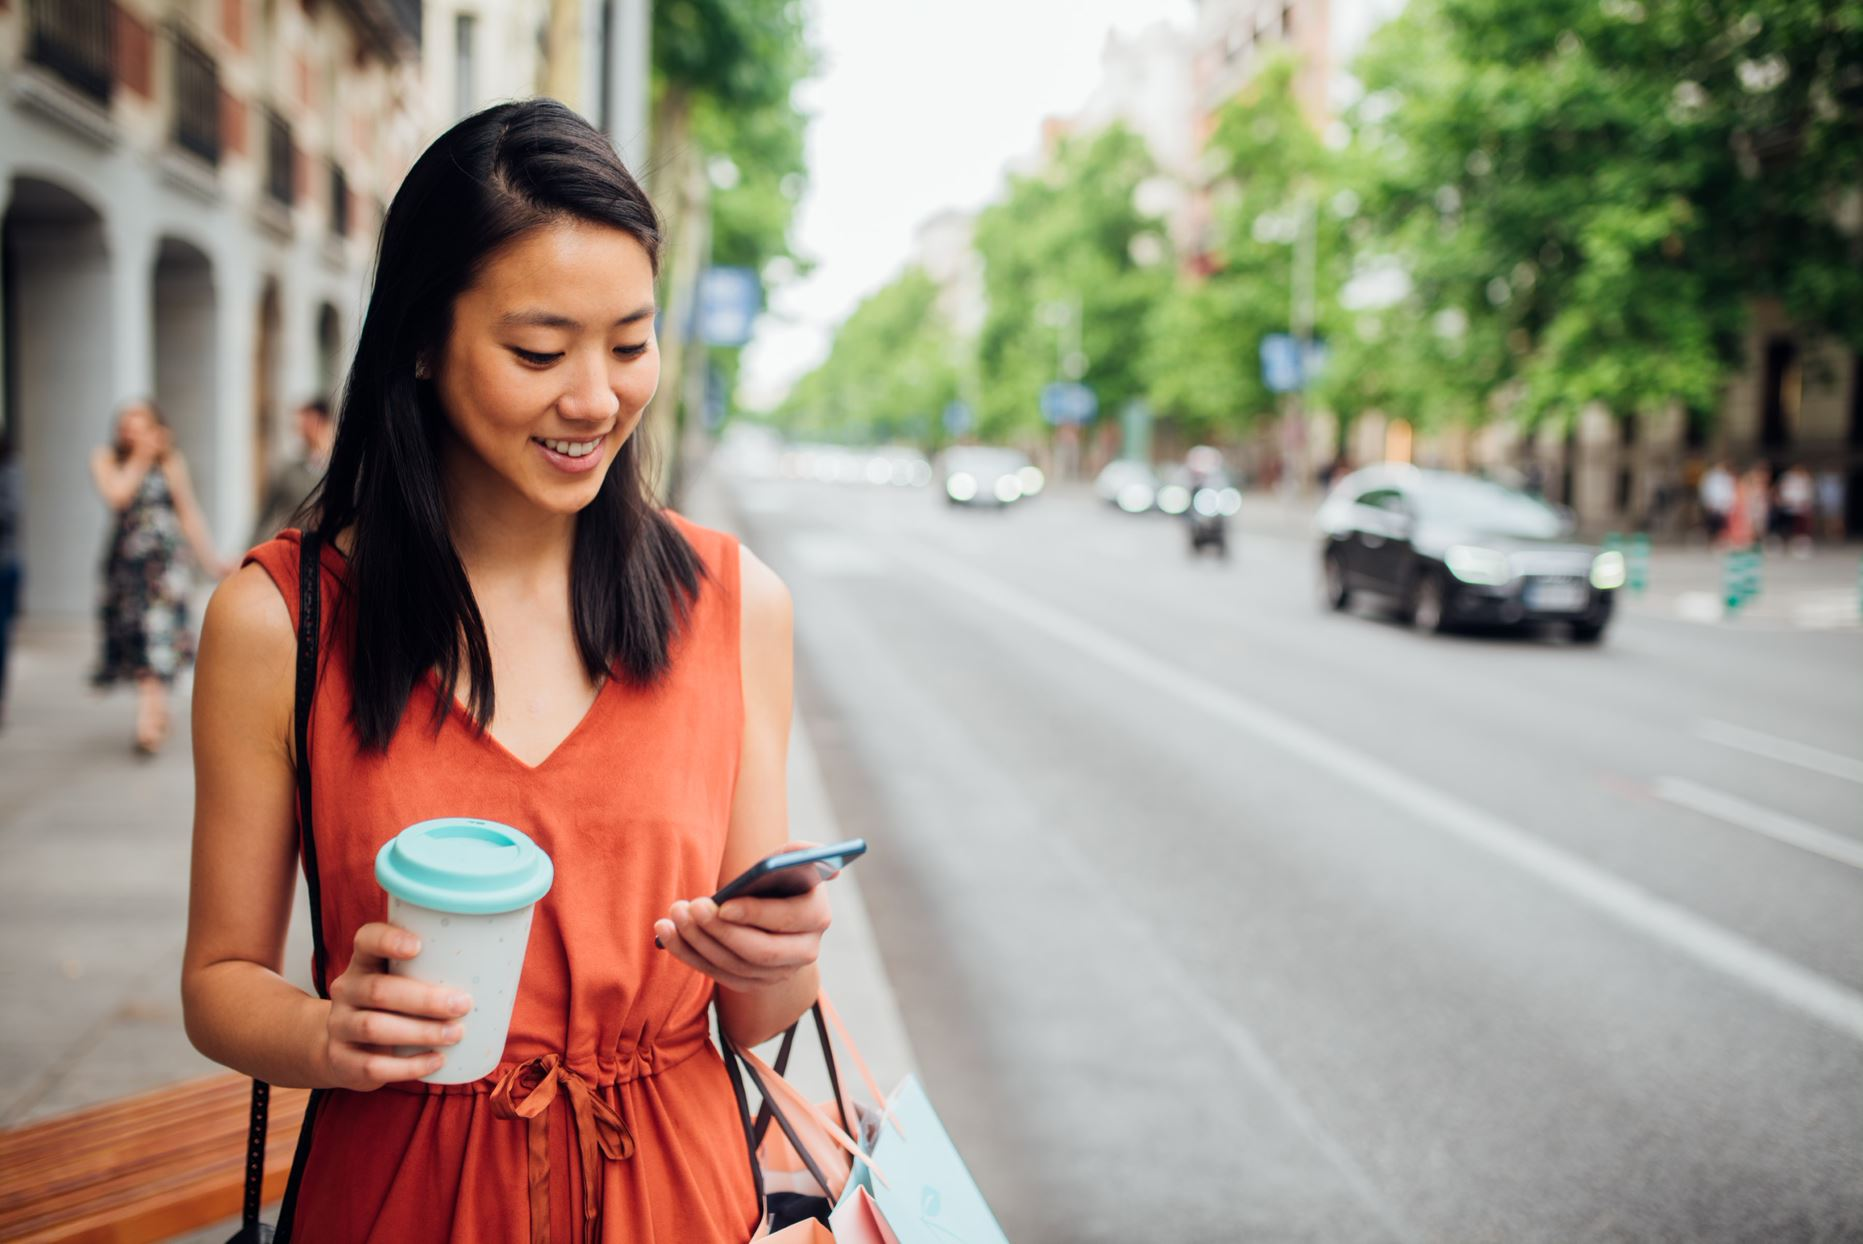 person with a cup of coffee walking on the street and checking her phone